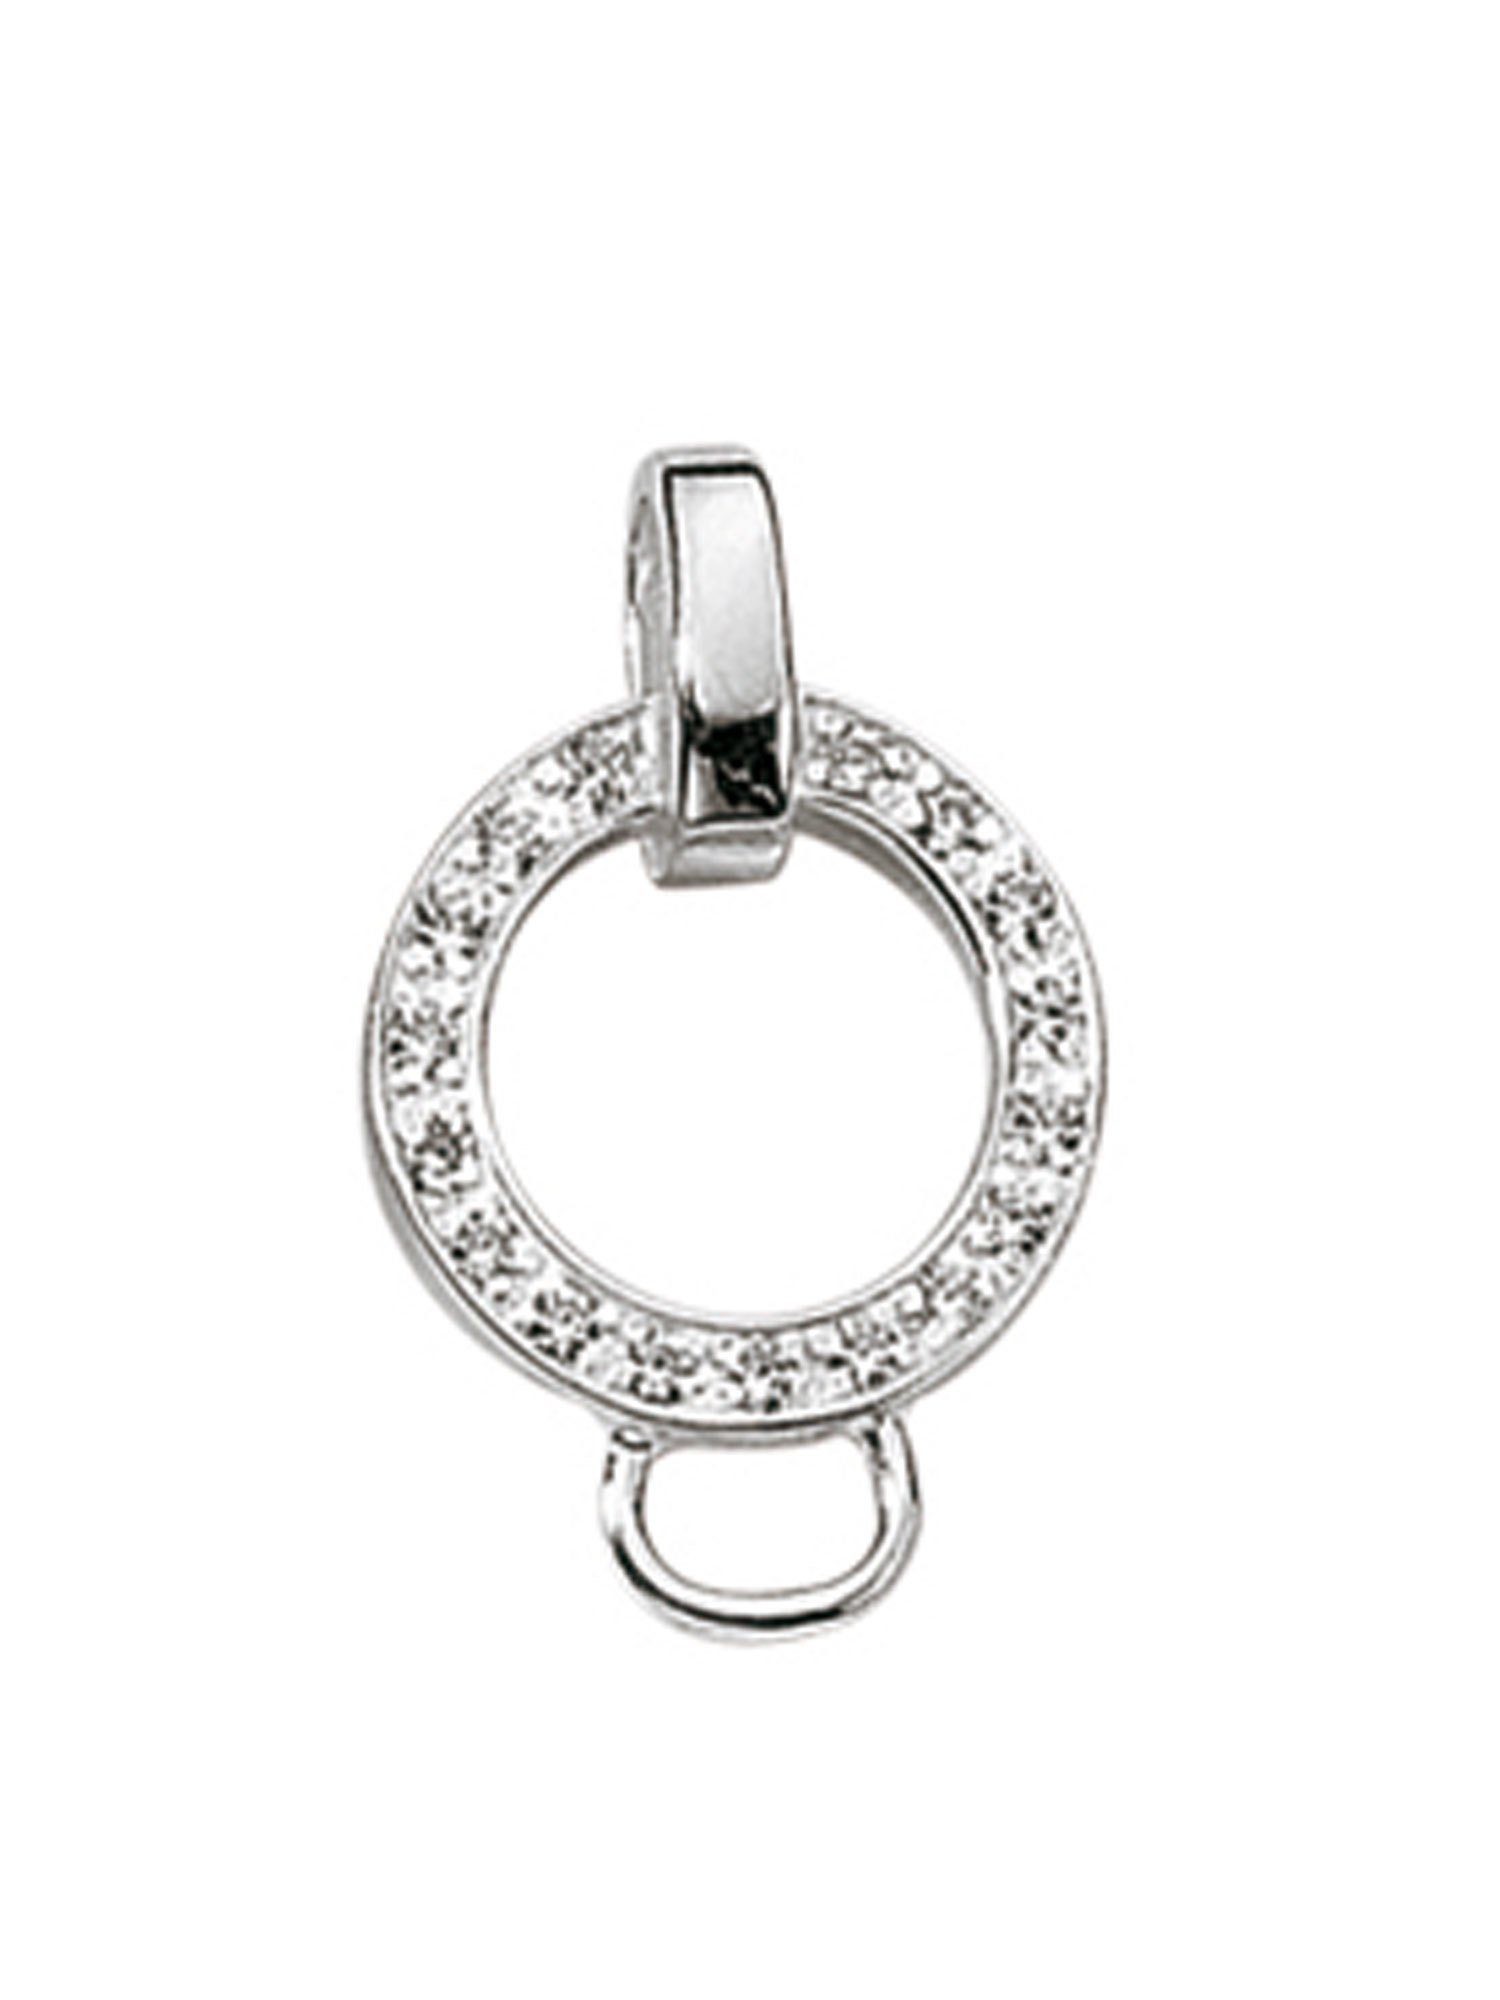 Adelia´s Charm-Einhänger »Silber 925 Sterling Silver Charms - Träger« 925 Sterling Silber mit Zirkonia